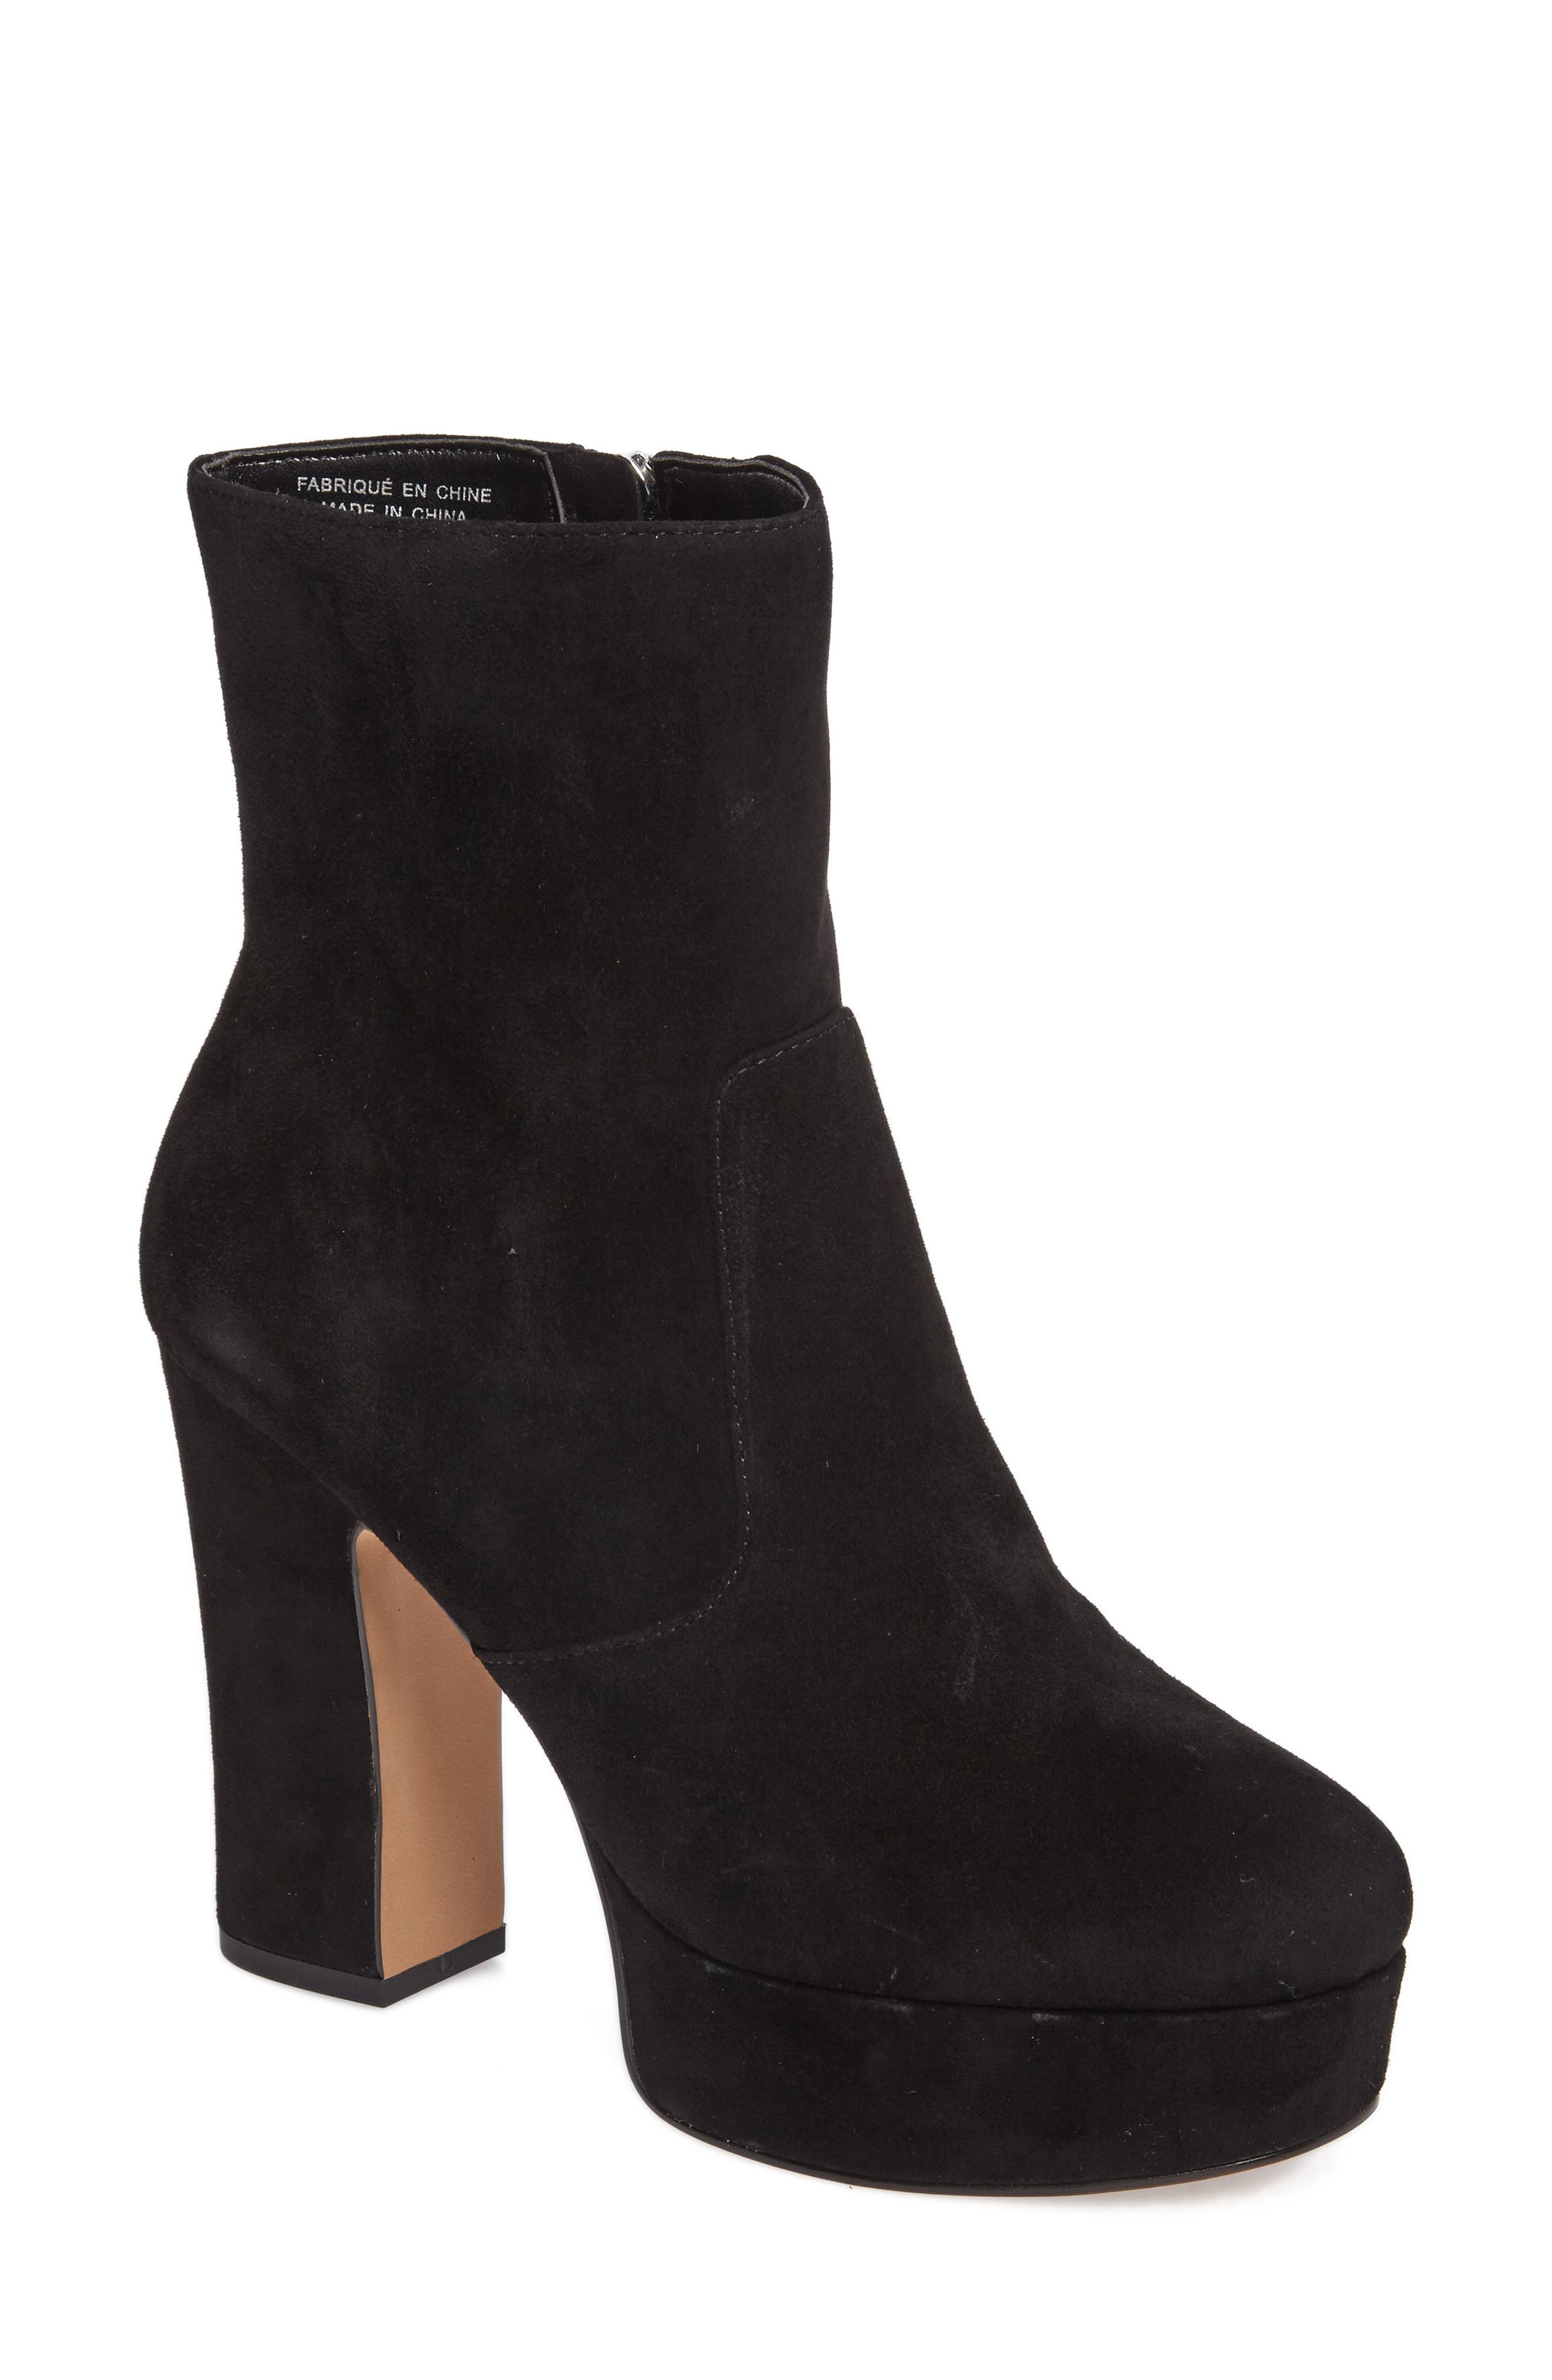 Alternate Image 1 Selected - Avec Les Filles Lianna Platform Bootie (Women)